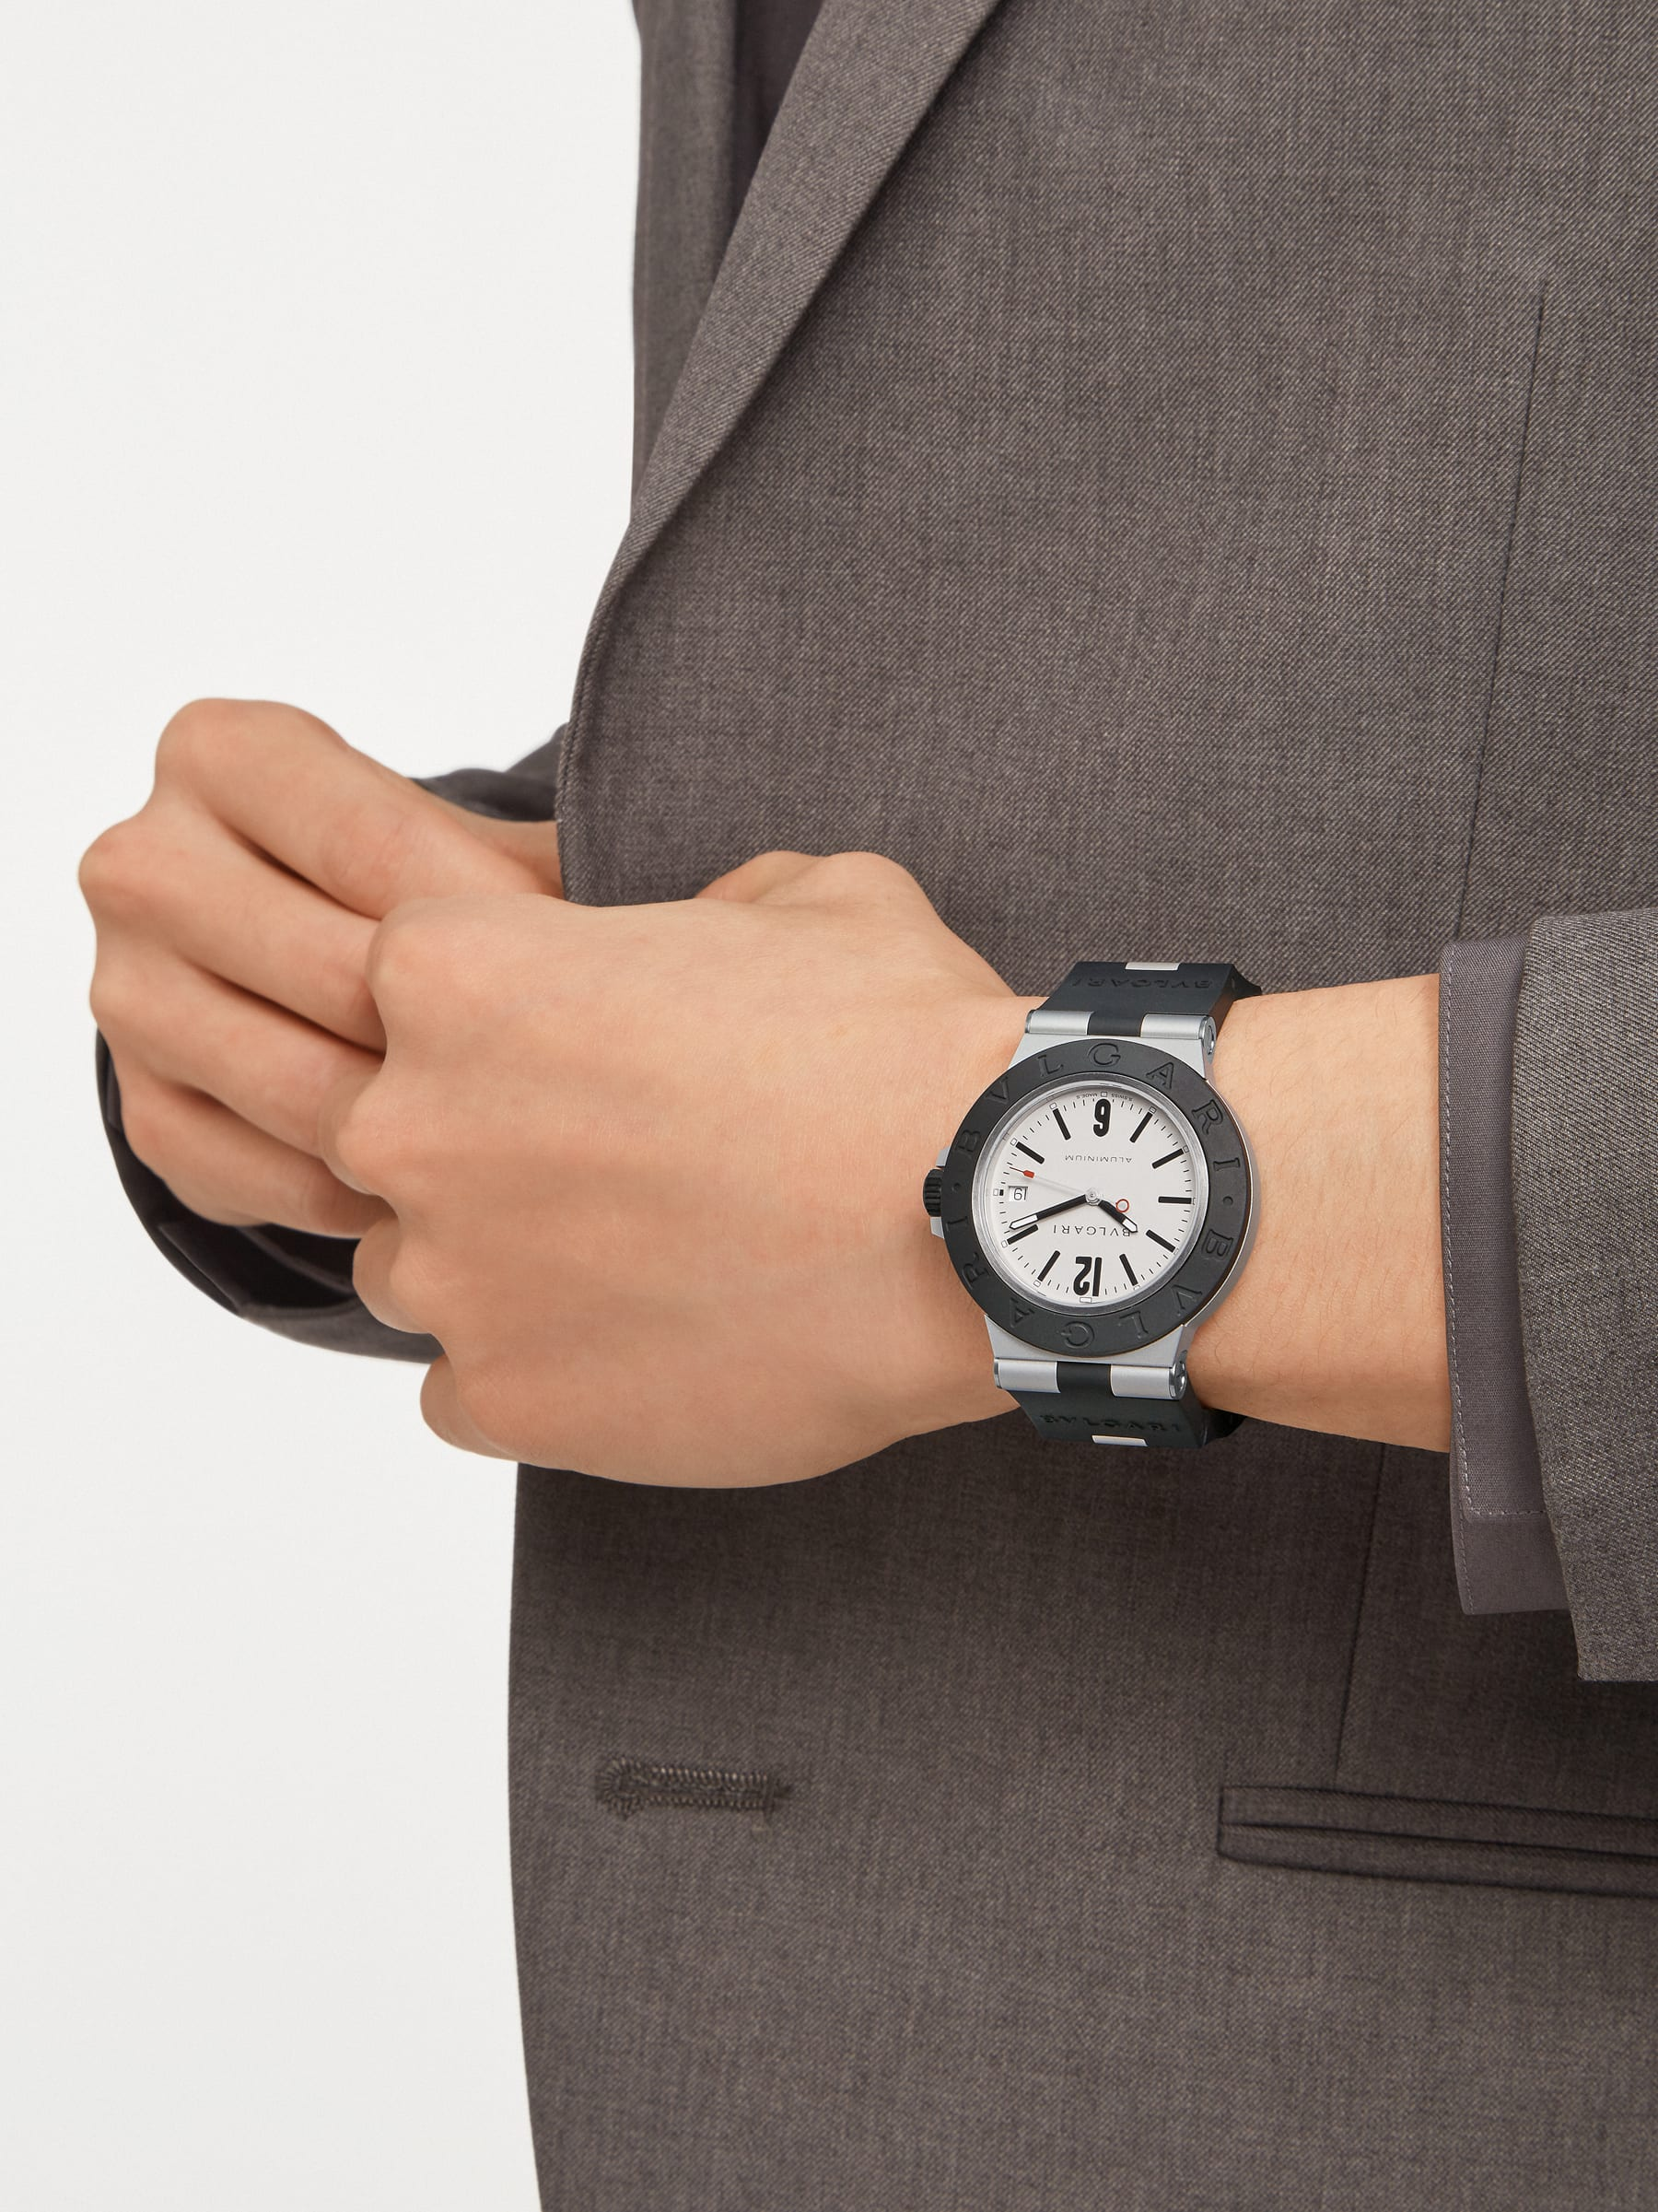 Bvlgari Aluminium watch with mechanical manufacture movement, automatic winding, 40 mm aluminium case, black rubber bezel with BVLGARI BVLGARI engraving, grey dial and black rubber bracelet. Water resistant up to 100 metres 103382 image 3